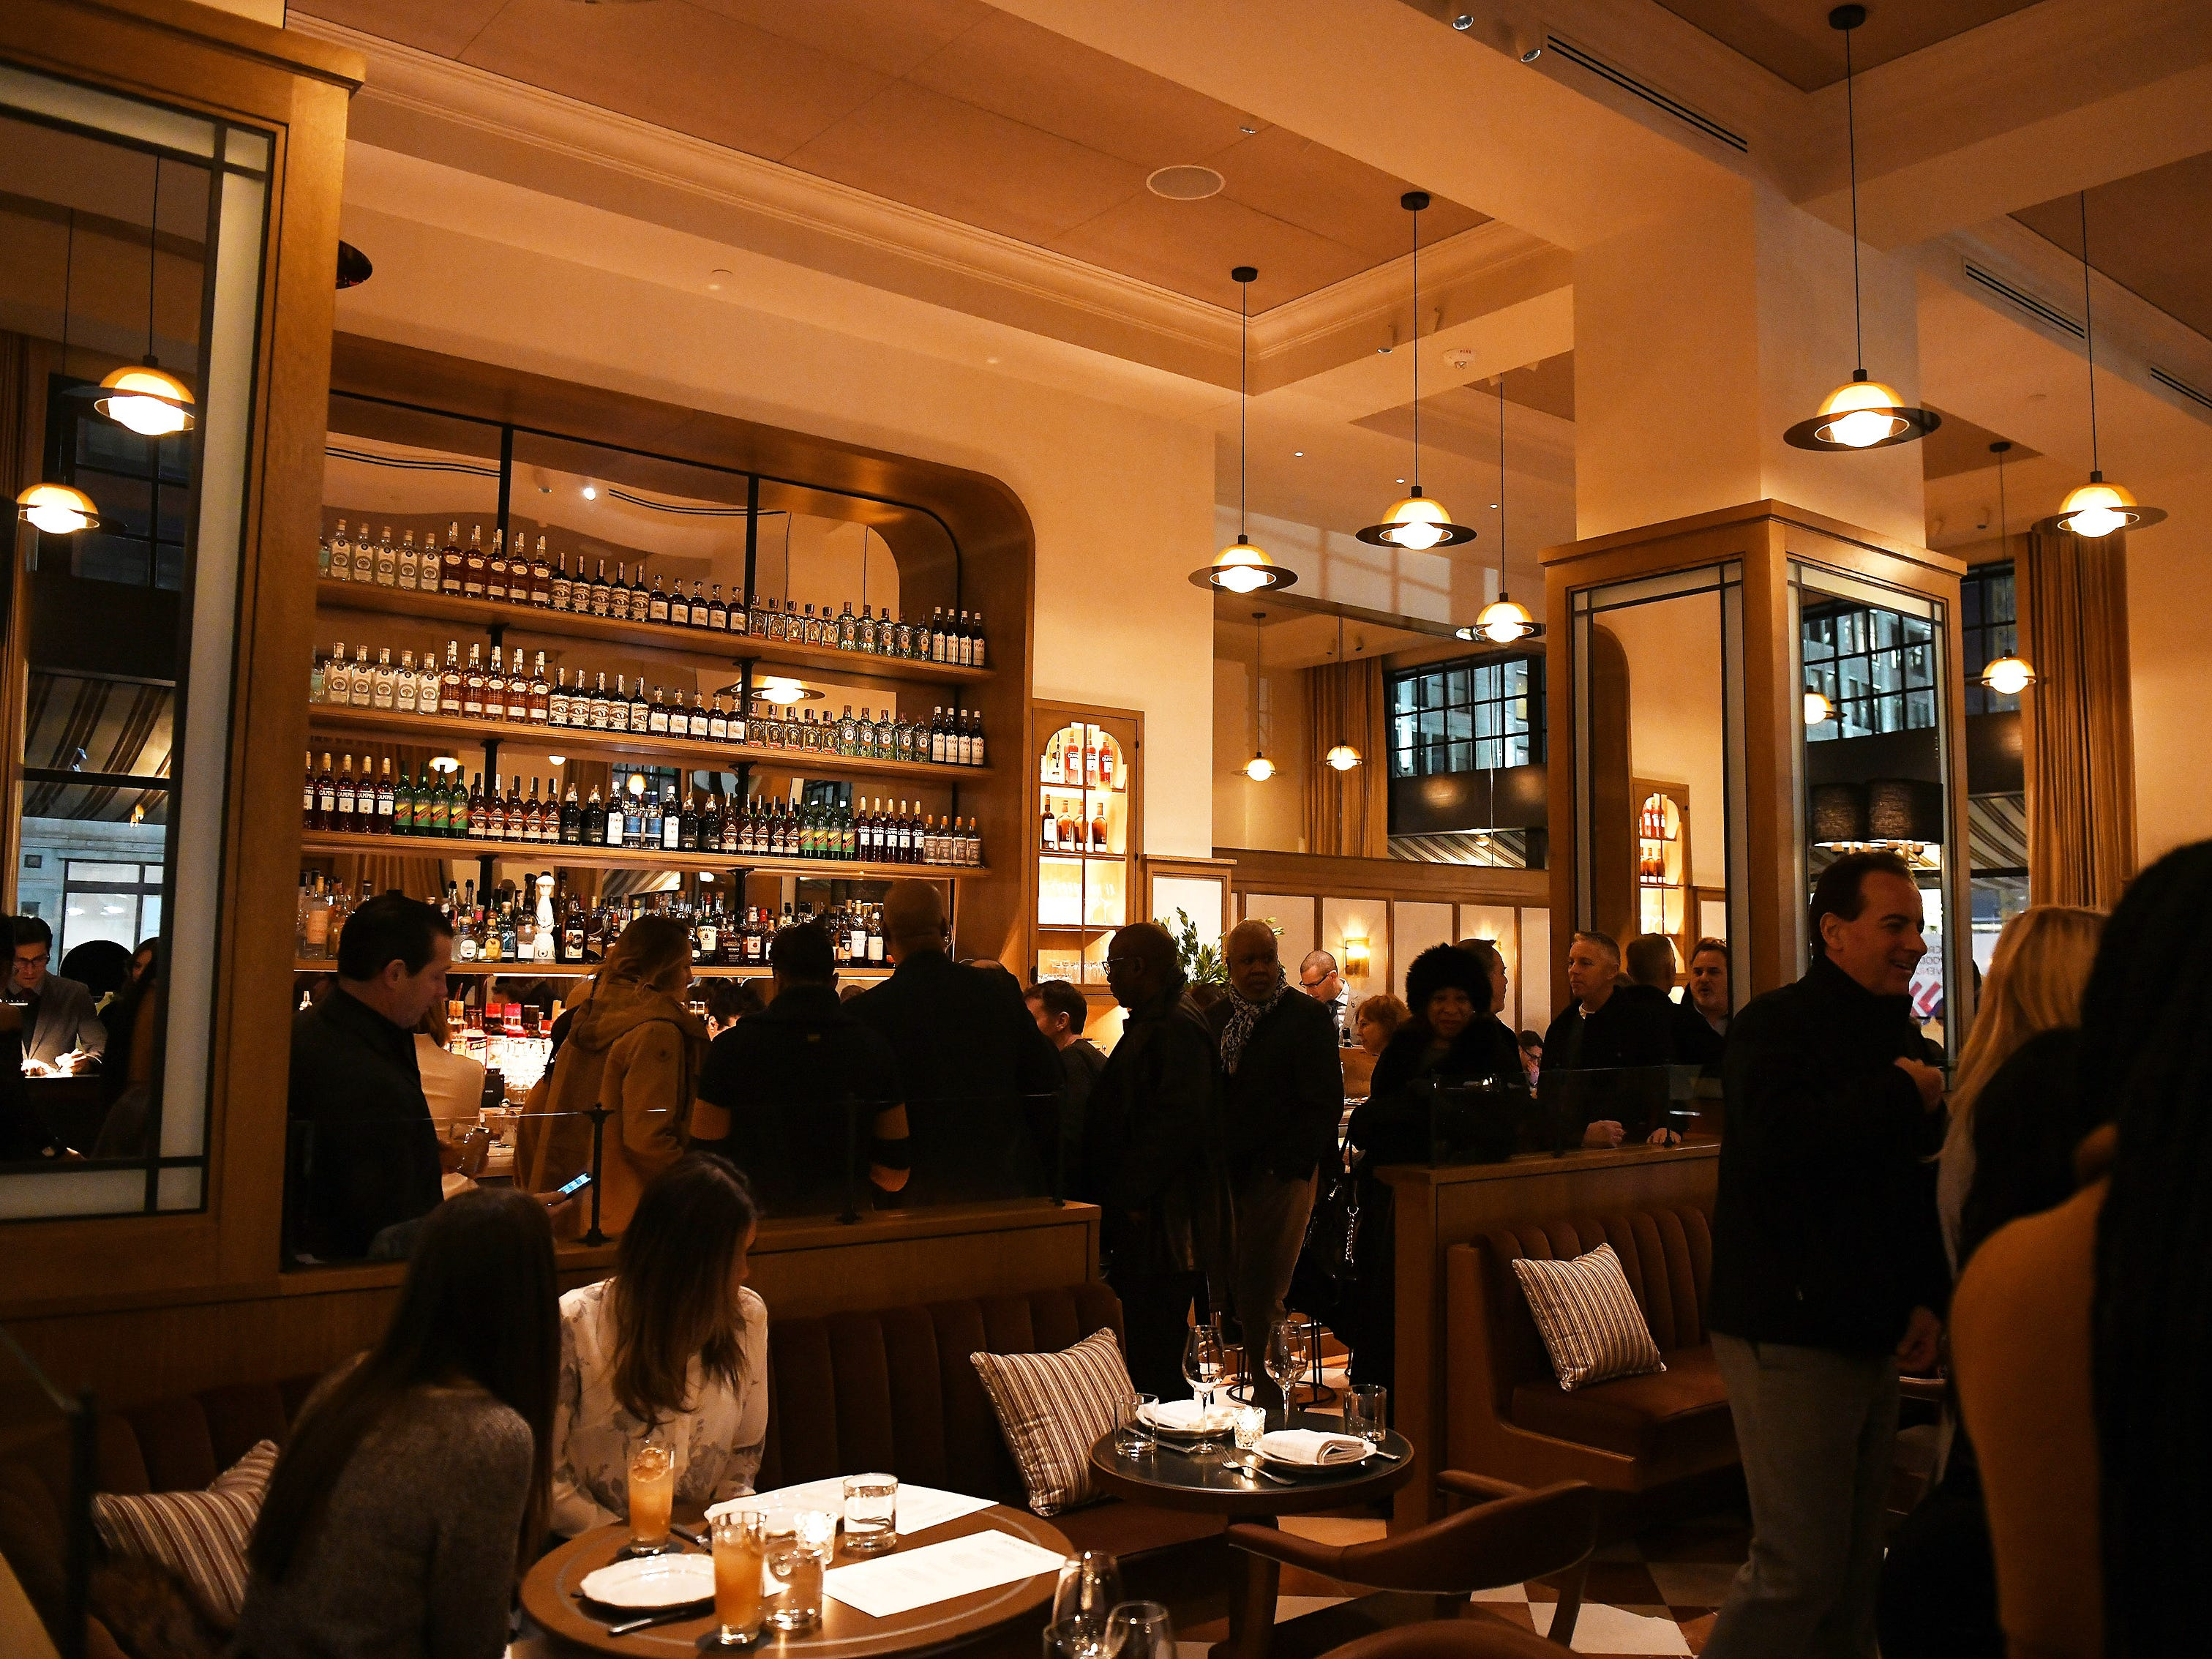 Patrons pack the grand opening of San Morello located inside the Shinola Hotel.